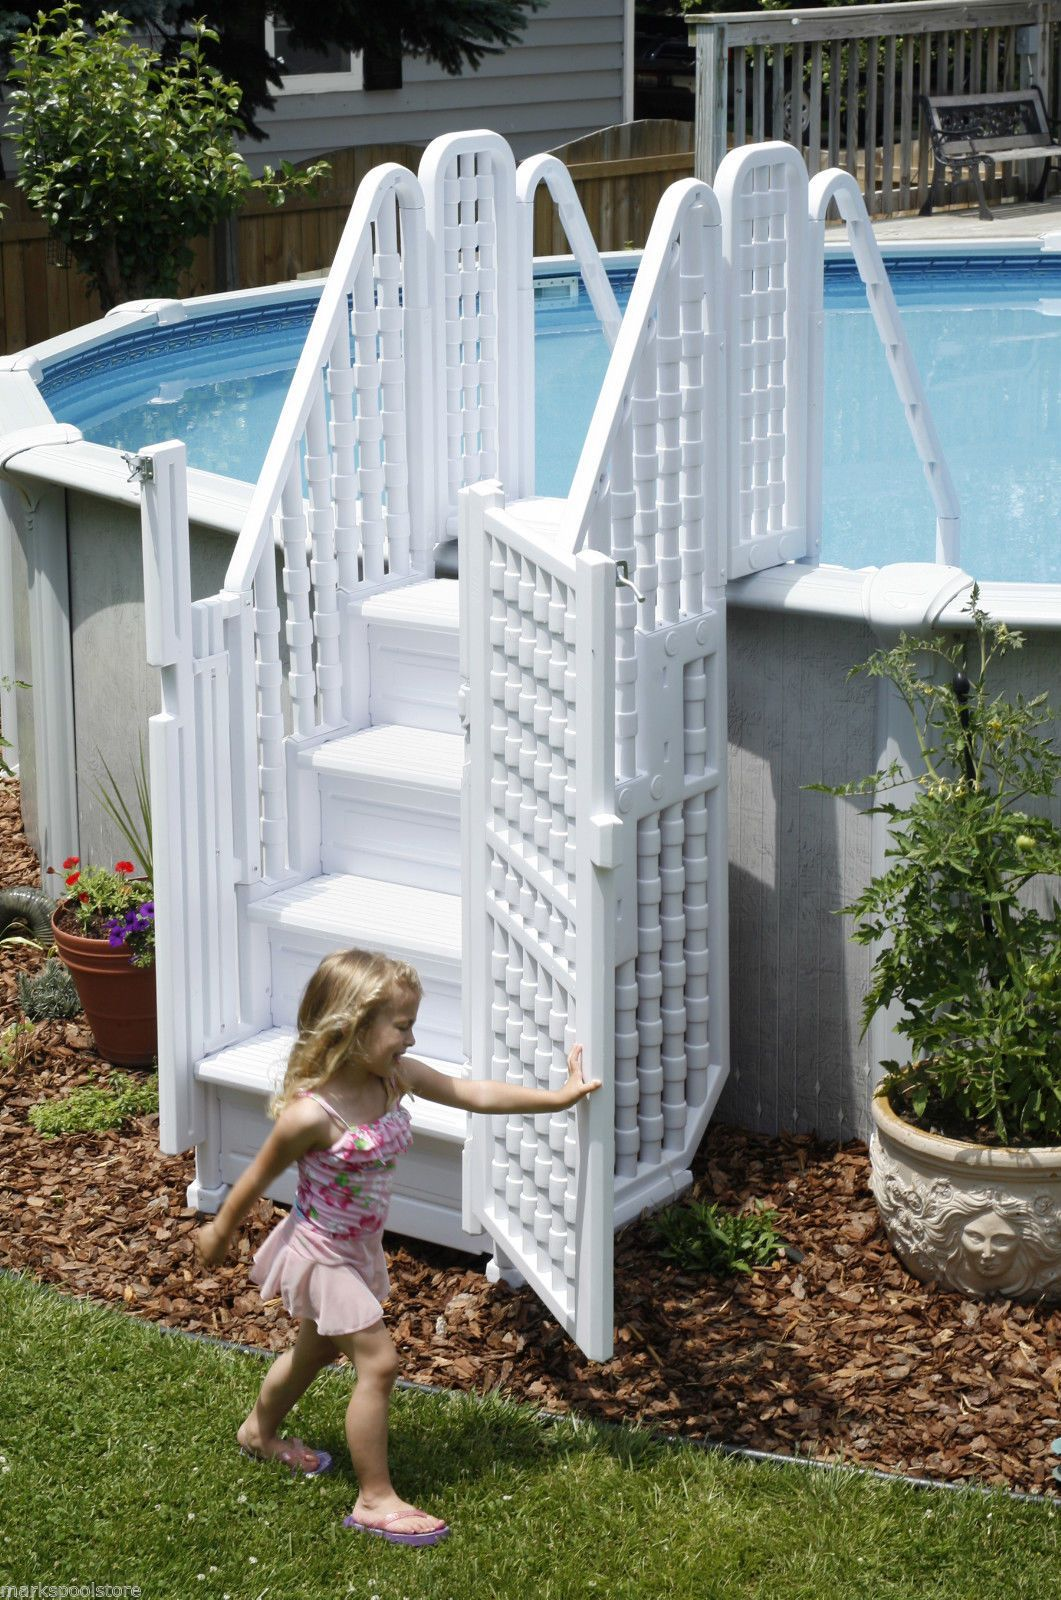 Confer pool step complete entry system w locking gate